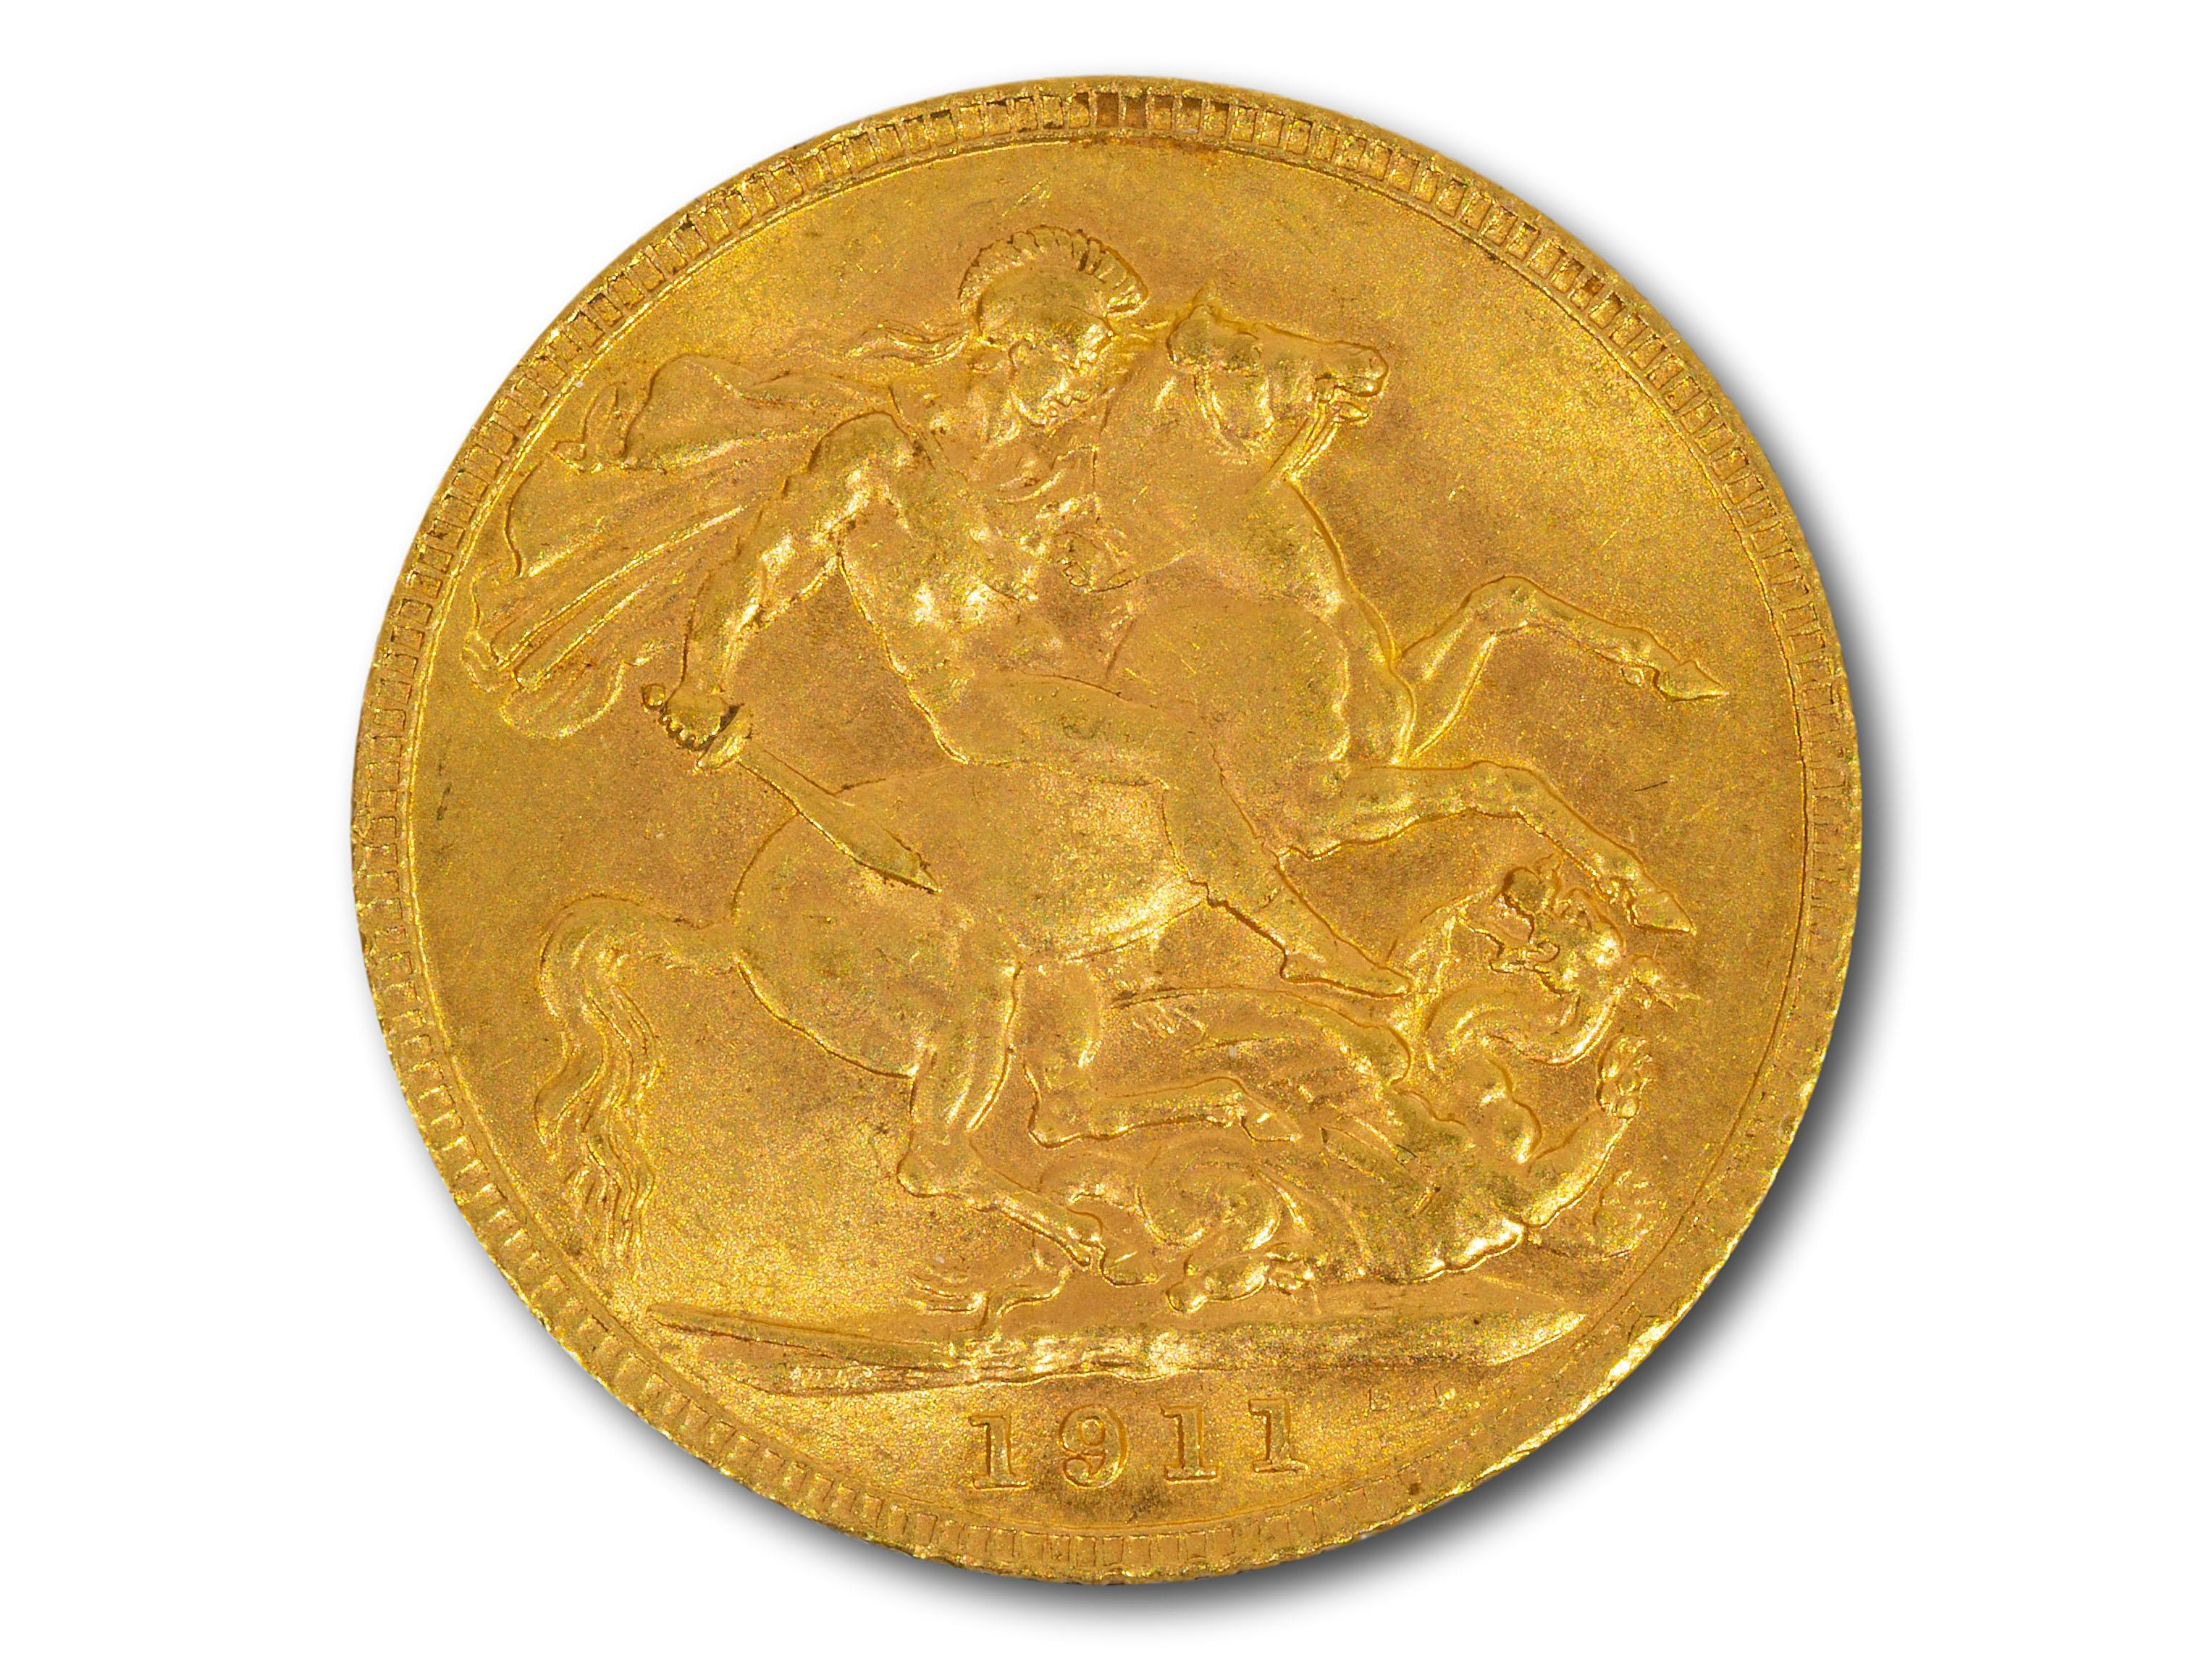 A 1911 George V Gold Sovereign, total weight 8g